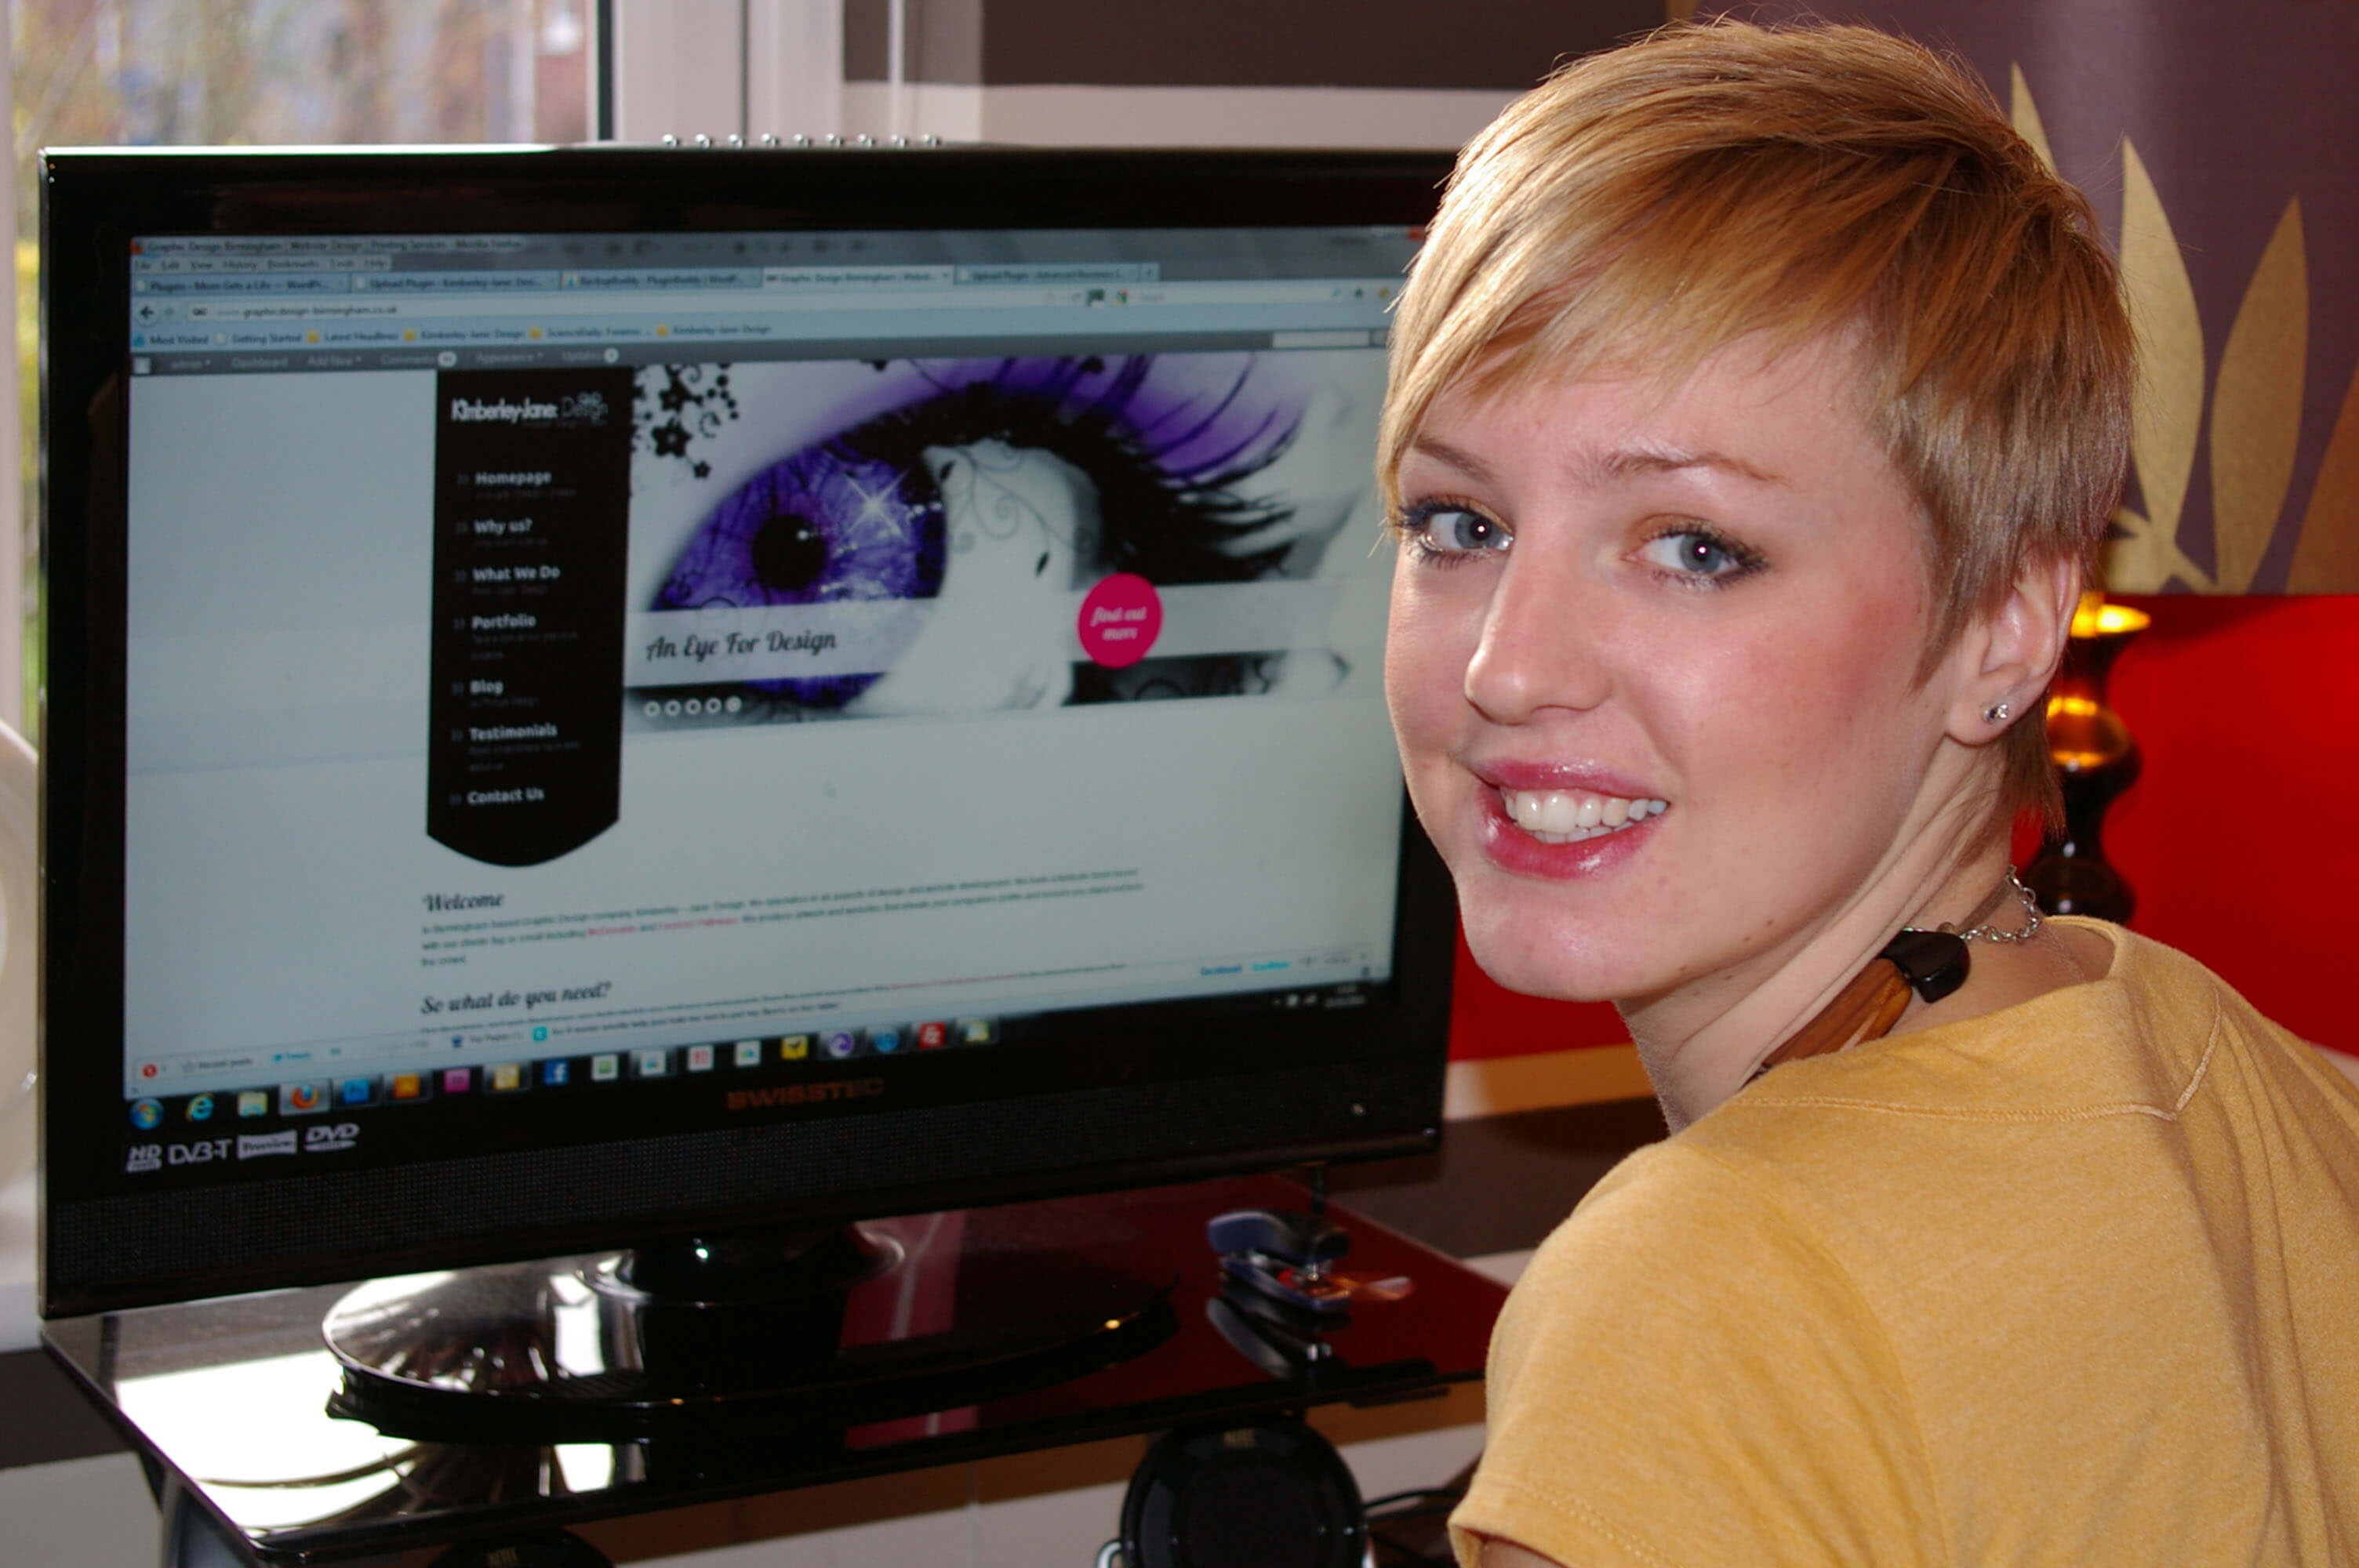 Kim - Managing director developing a website